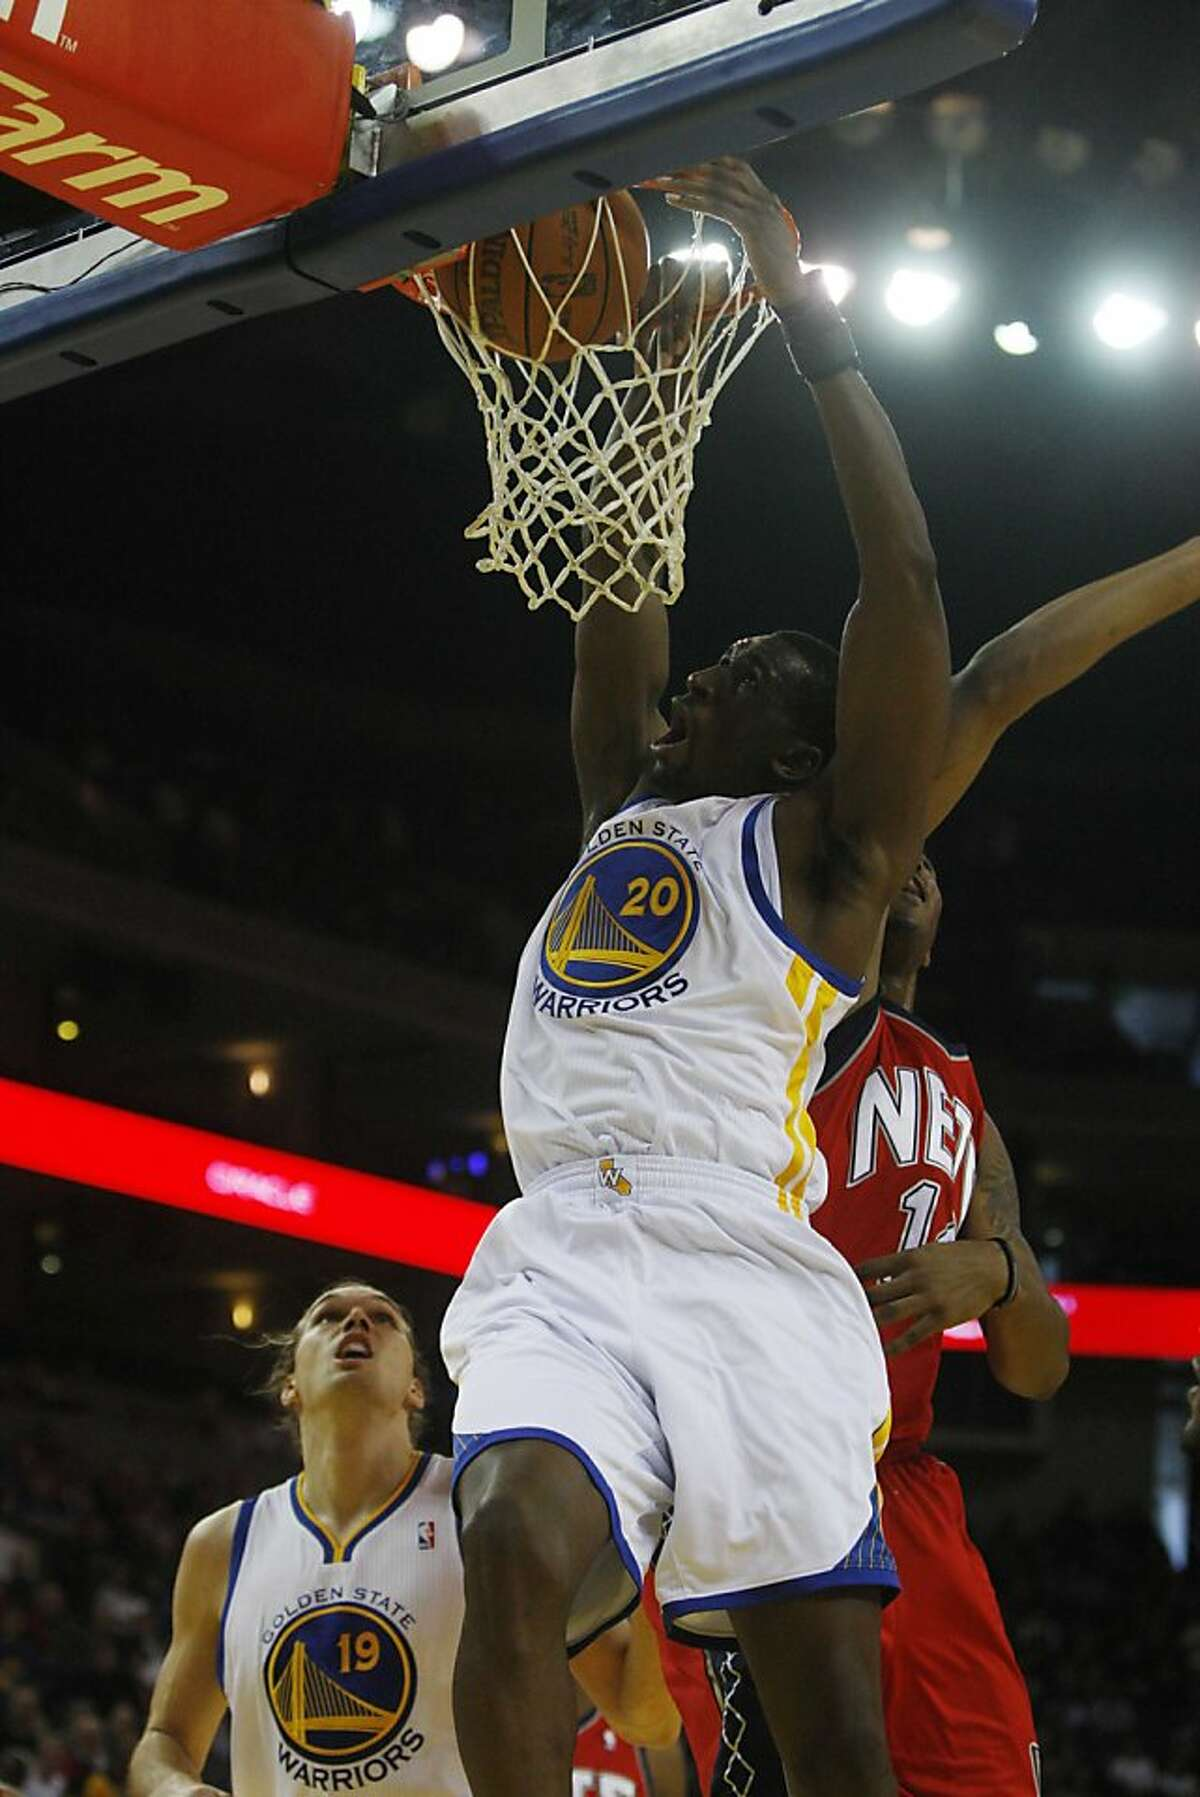 Warriors #20 Ekpe Udoh dunks one in the basket at Oracle Arena during the first half of a home game with Golden State Warriors and the New Jersey Nets on Monday January. 17, 2011 in Oakland, Calif. Ran on: 01-22-2011 The Warriors win-now philosophy has limited Ekpe Udohs playing time. Ran on: 07-25-2011 Warriors forward Ekpe Udoh is working on two things at Baylor: his degree and staying in shape.